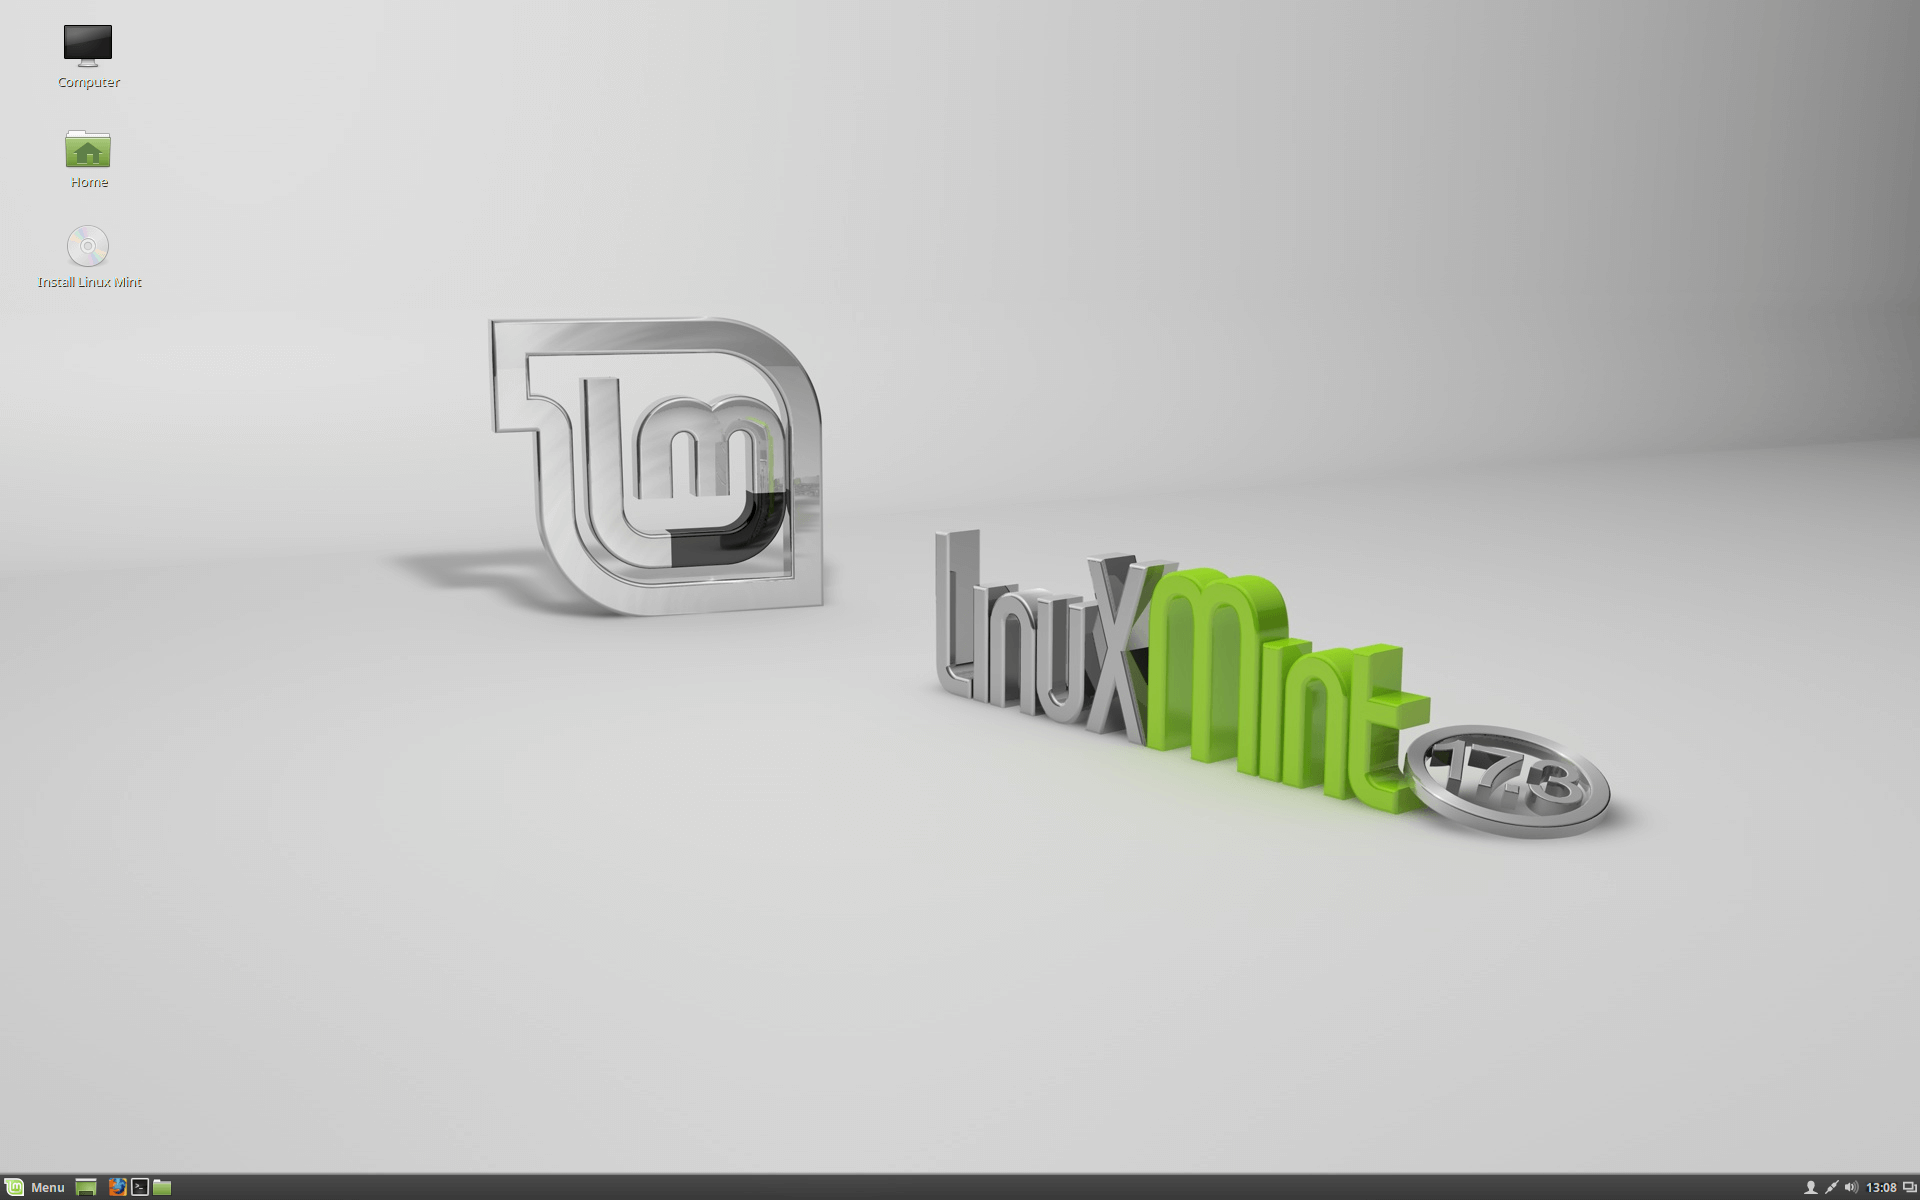 How To Install Linux Mint From Windows 10